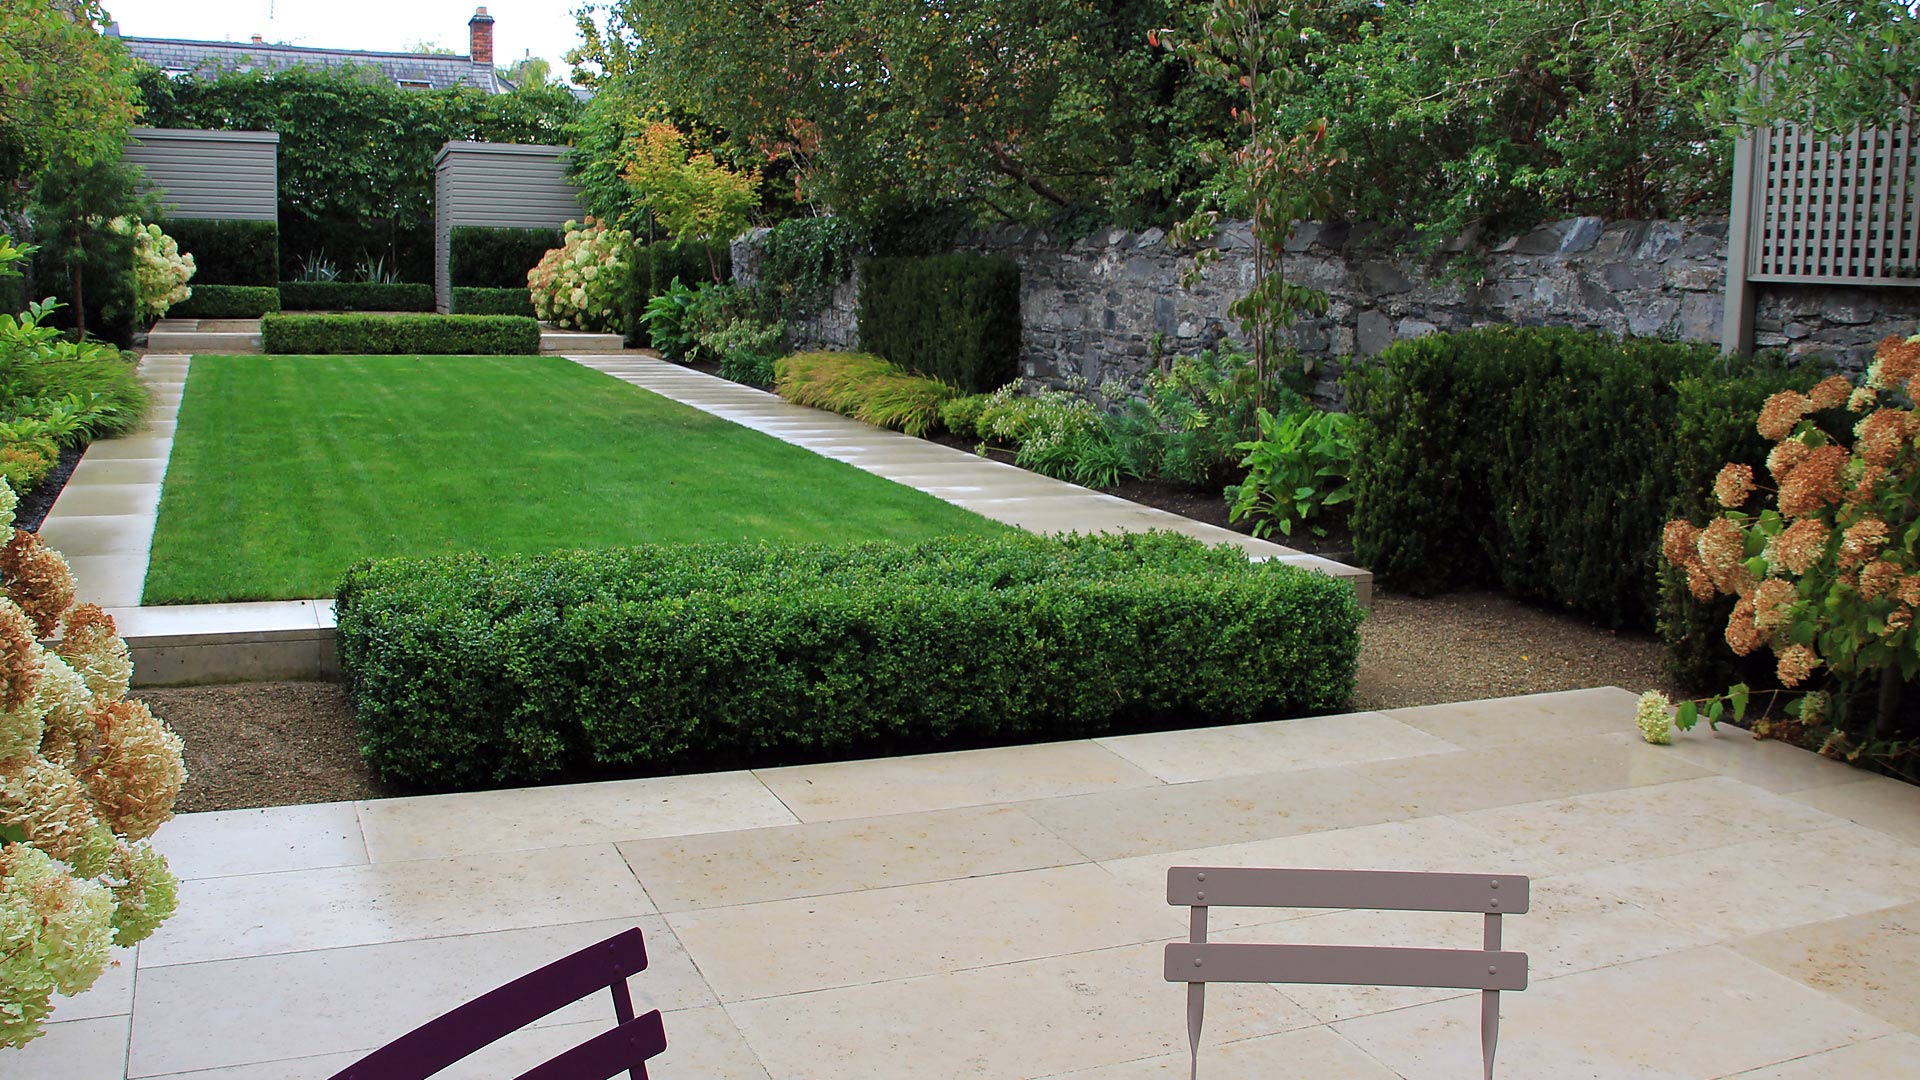 1000 images about trethewey contemporary lawn on for Garden design images